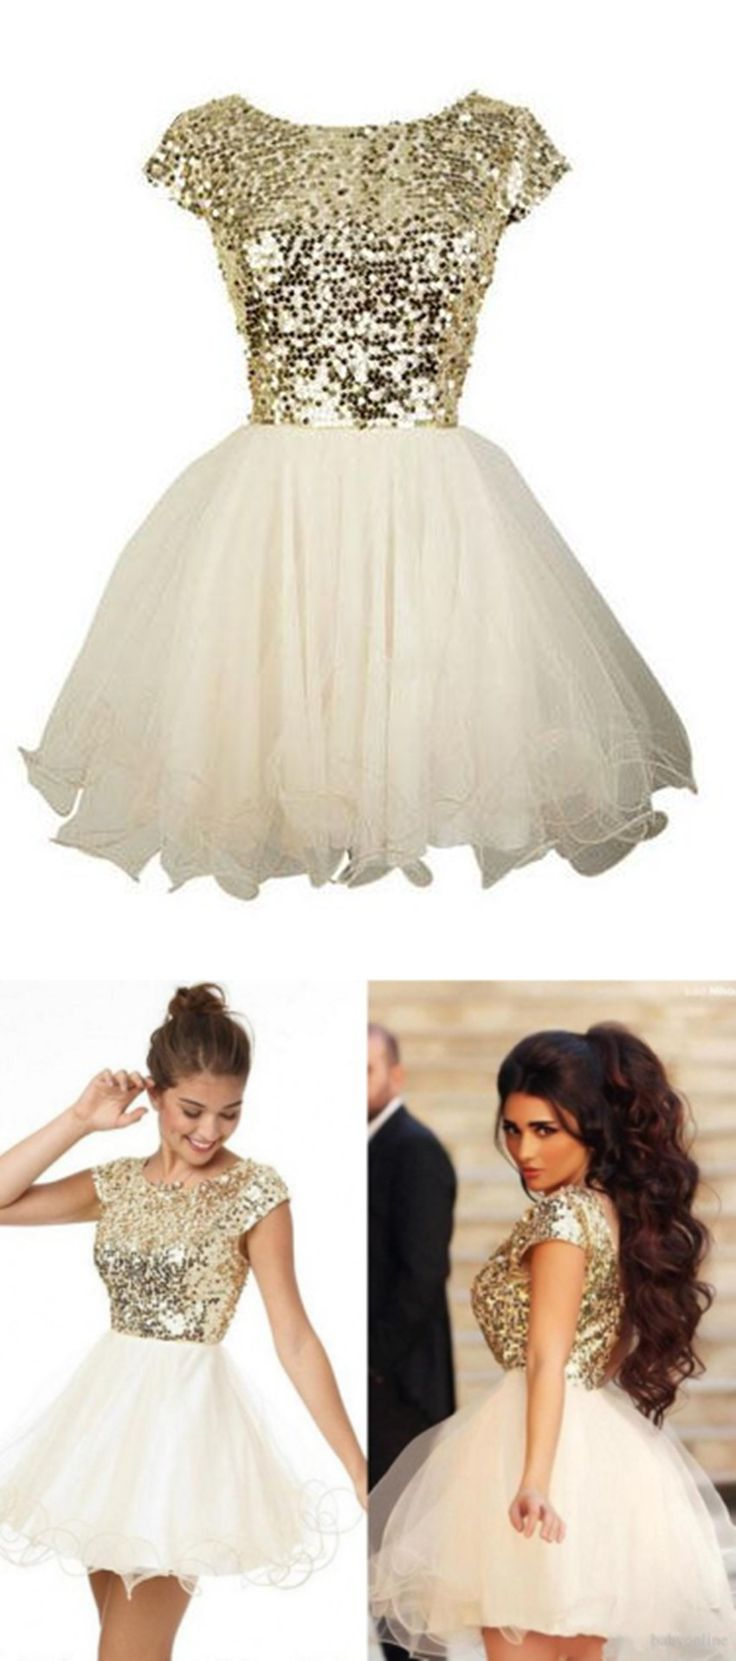 New Arrival A-Line O-Neck Homecoming Dresses,Short Prom Dresses,Cheap Homecoming Dresses, Graduation Dress, Formal Women Dress,Homecoming Dress